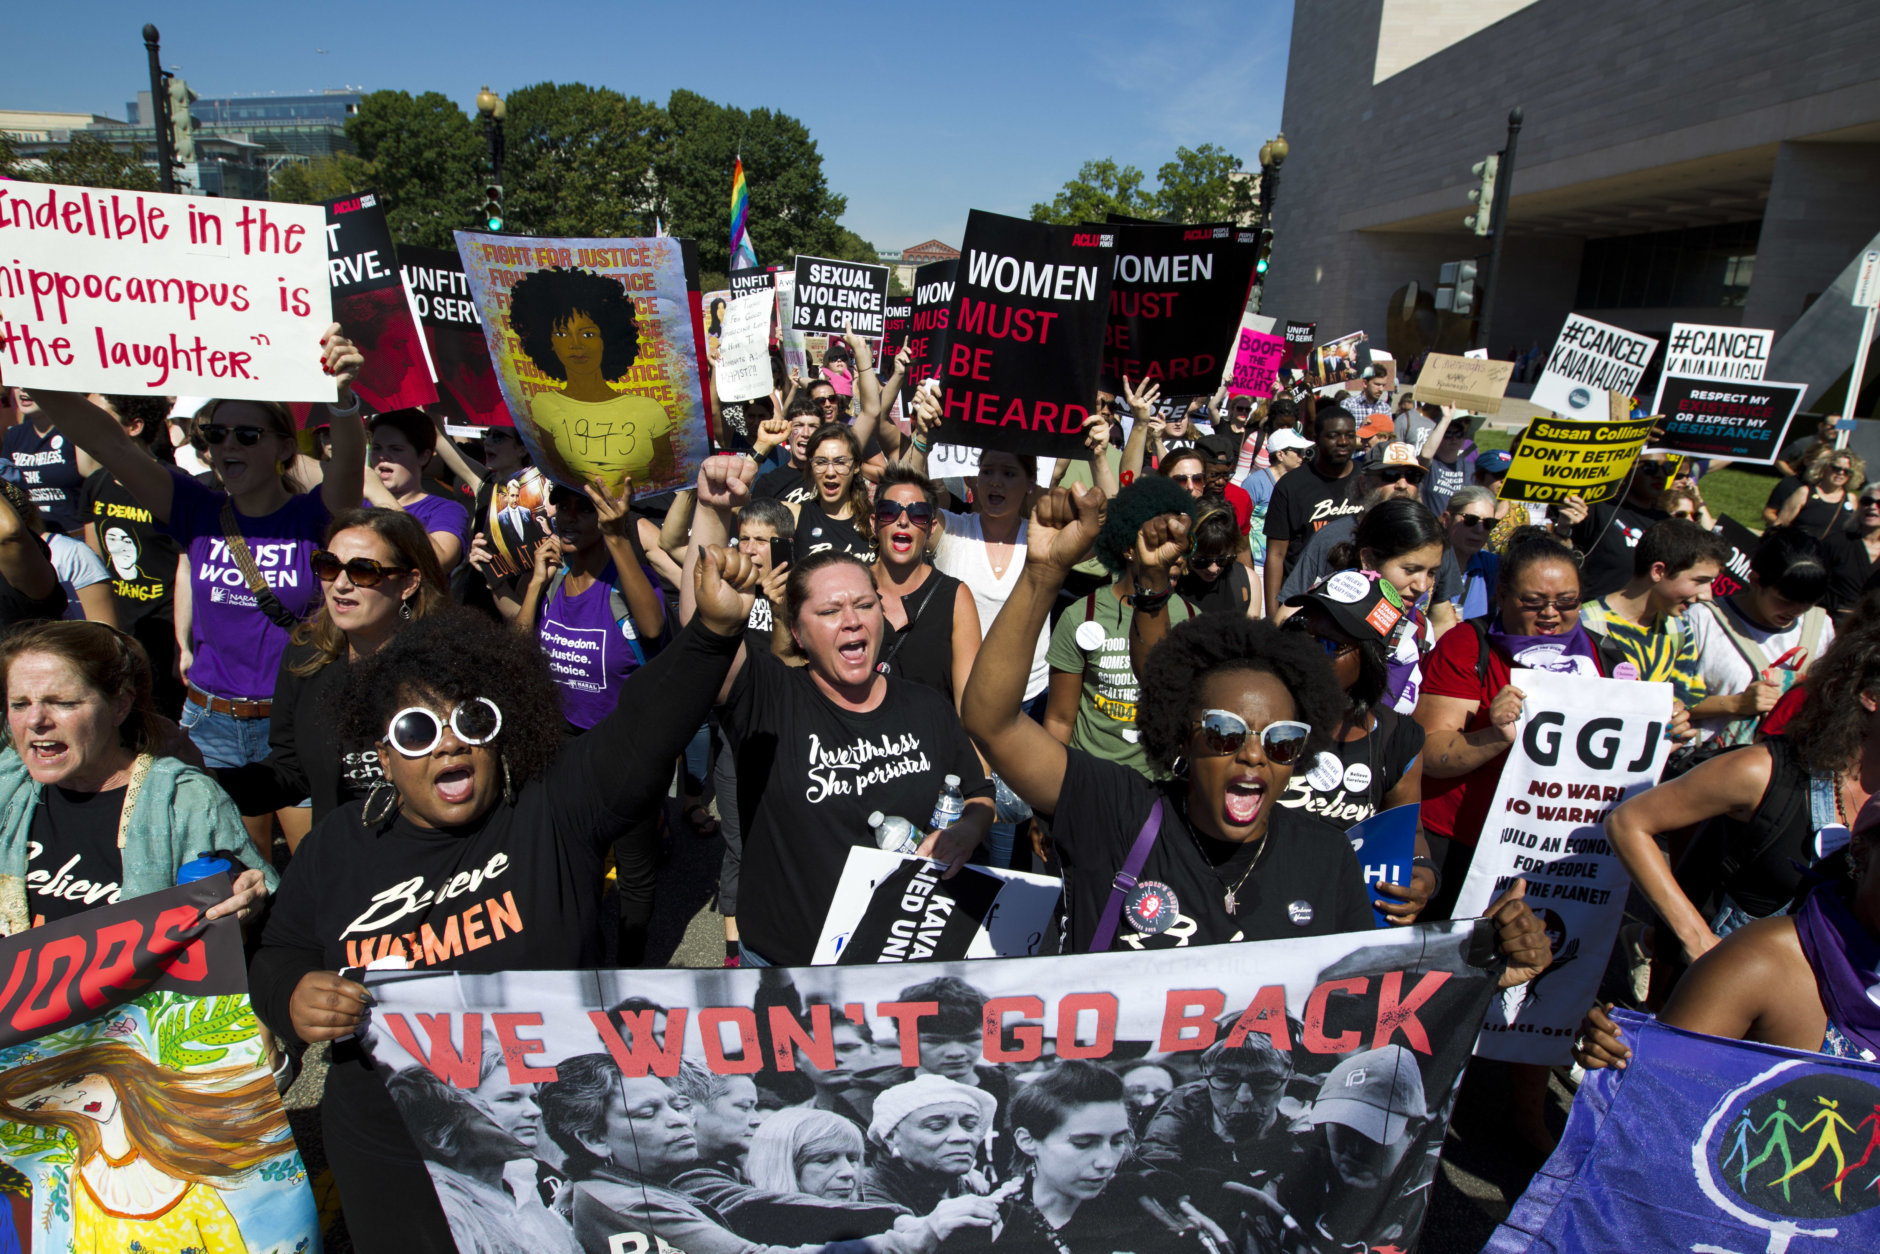 Demonstrators protest against Supreme Court nominee Brett Kavanaugh, as they march to the U.S. Supreme Court, on Thursday, Oct. 4, 2018, in Washington. (AP Photo/Jose Luis Magana)